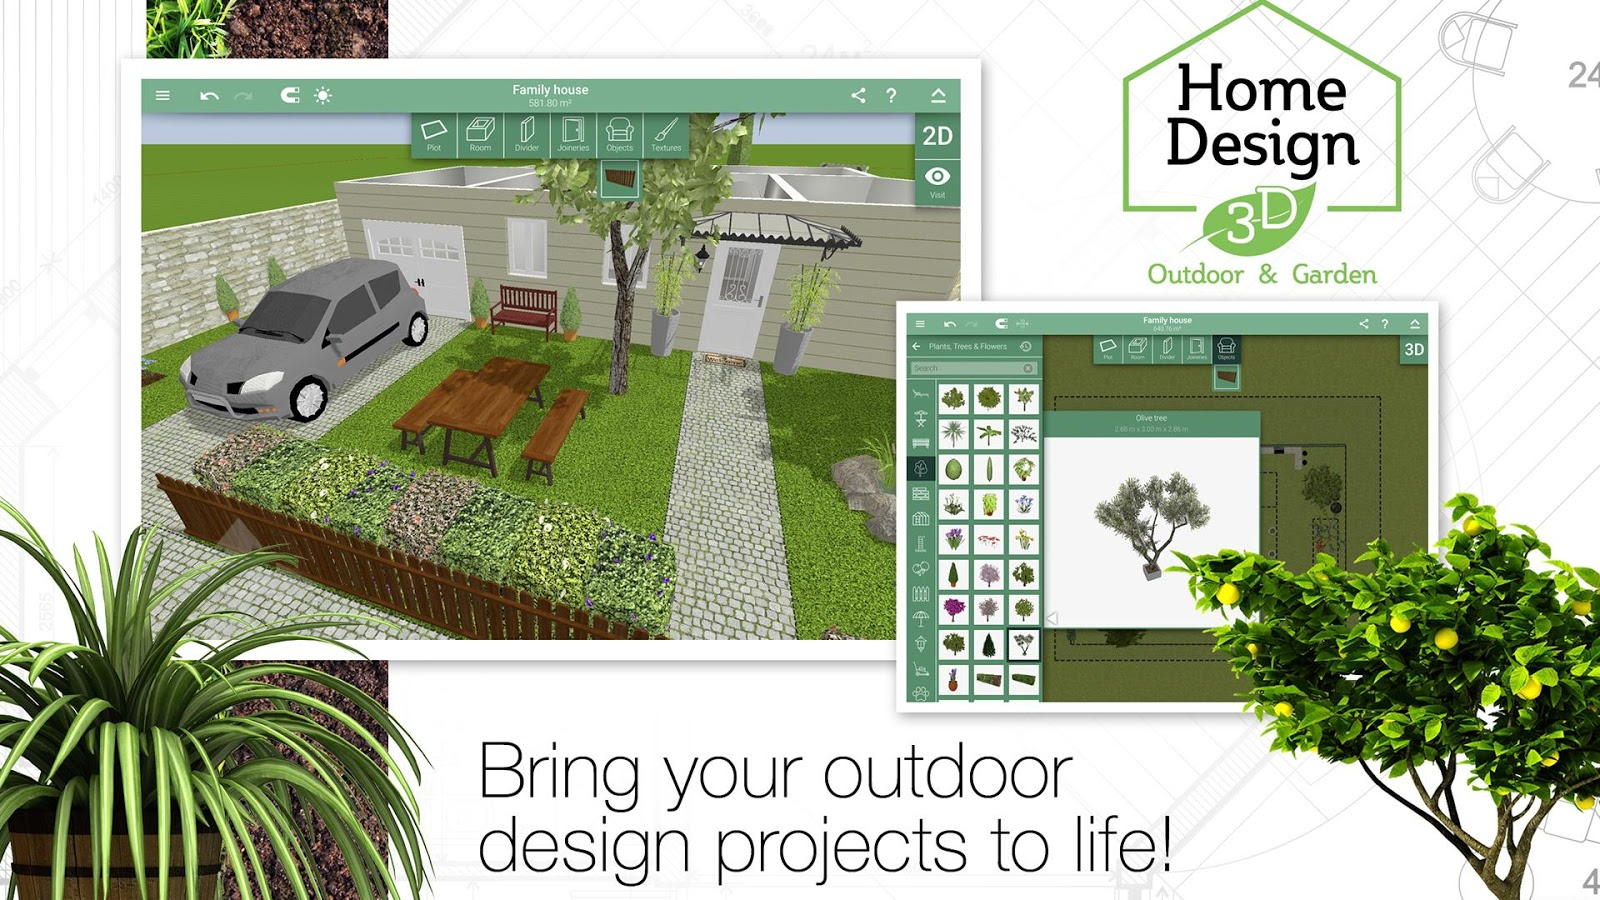 Home design 3d outdoor garden android apps on google play - Design your backyard online ...